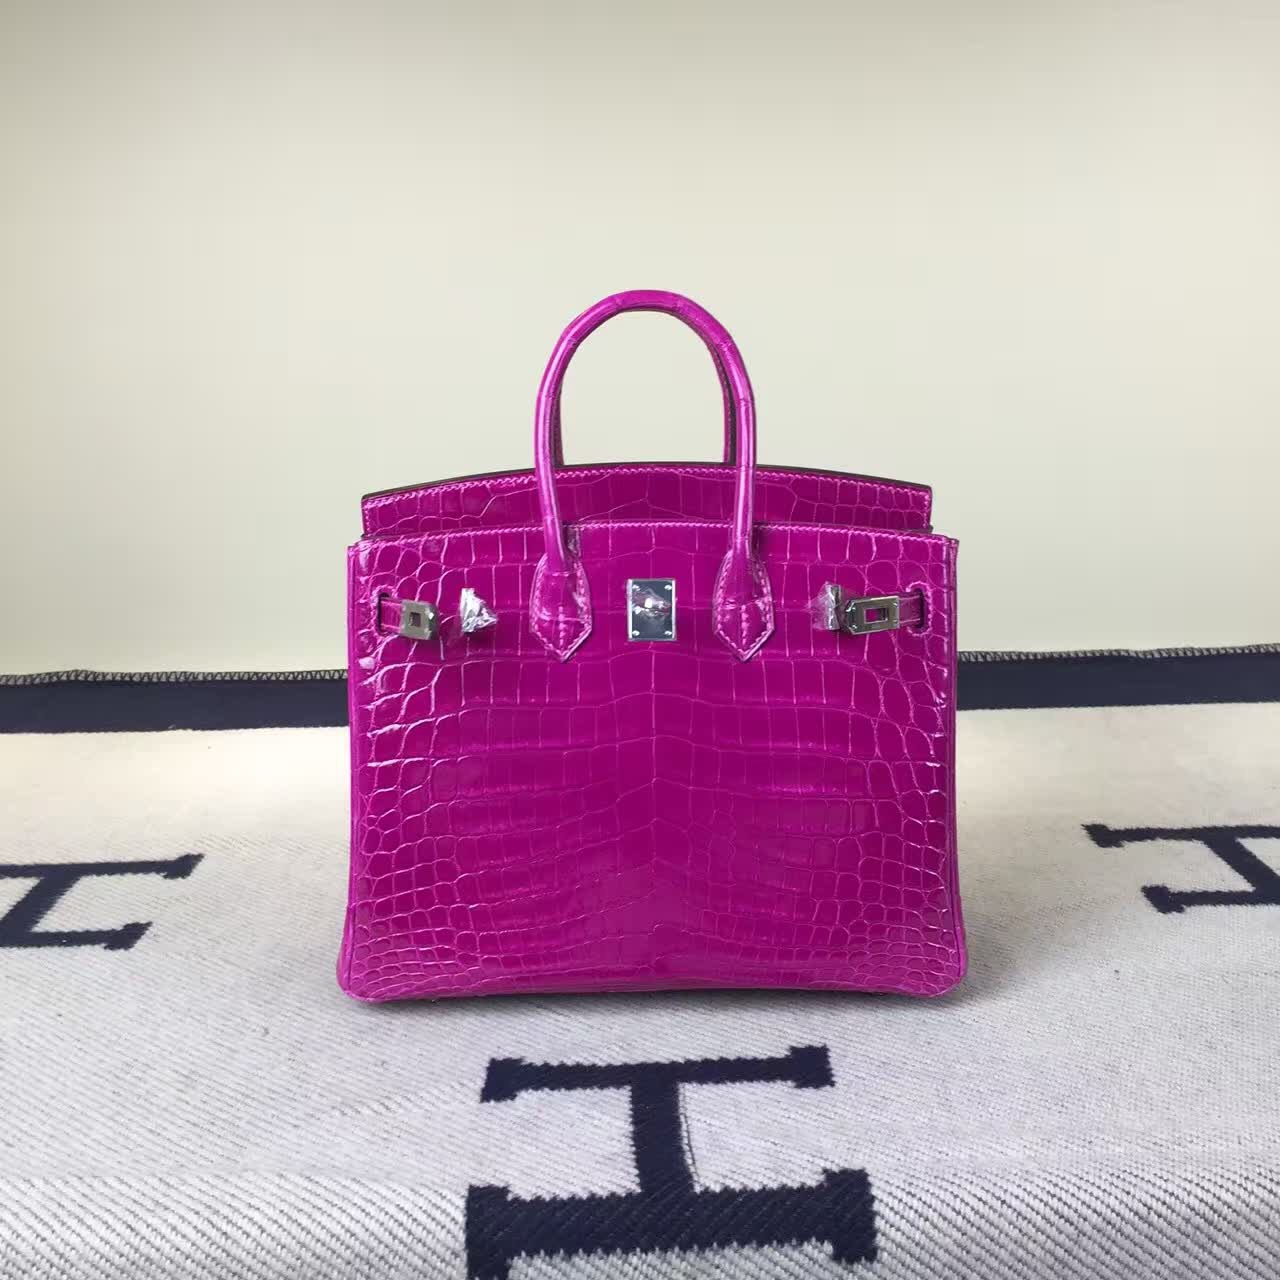 Discount Hermes J5 Rose Scheherazade Crocodile Shiny Leather Birkin Bag 25cm